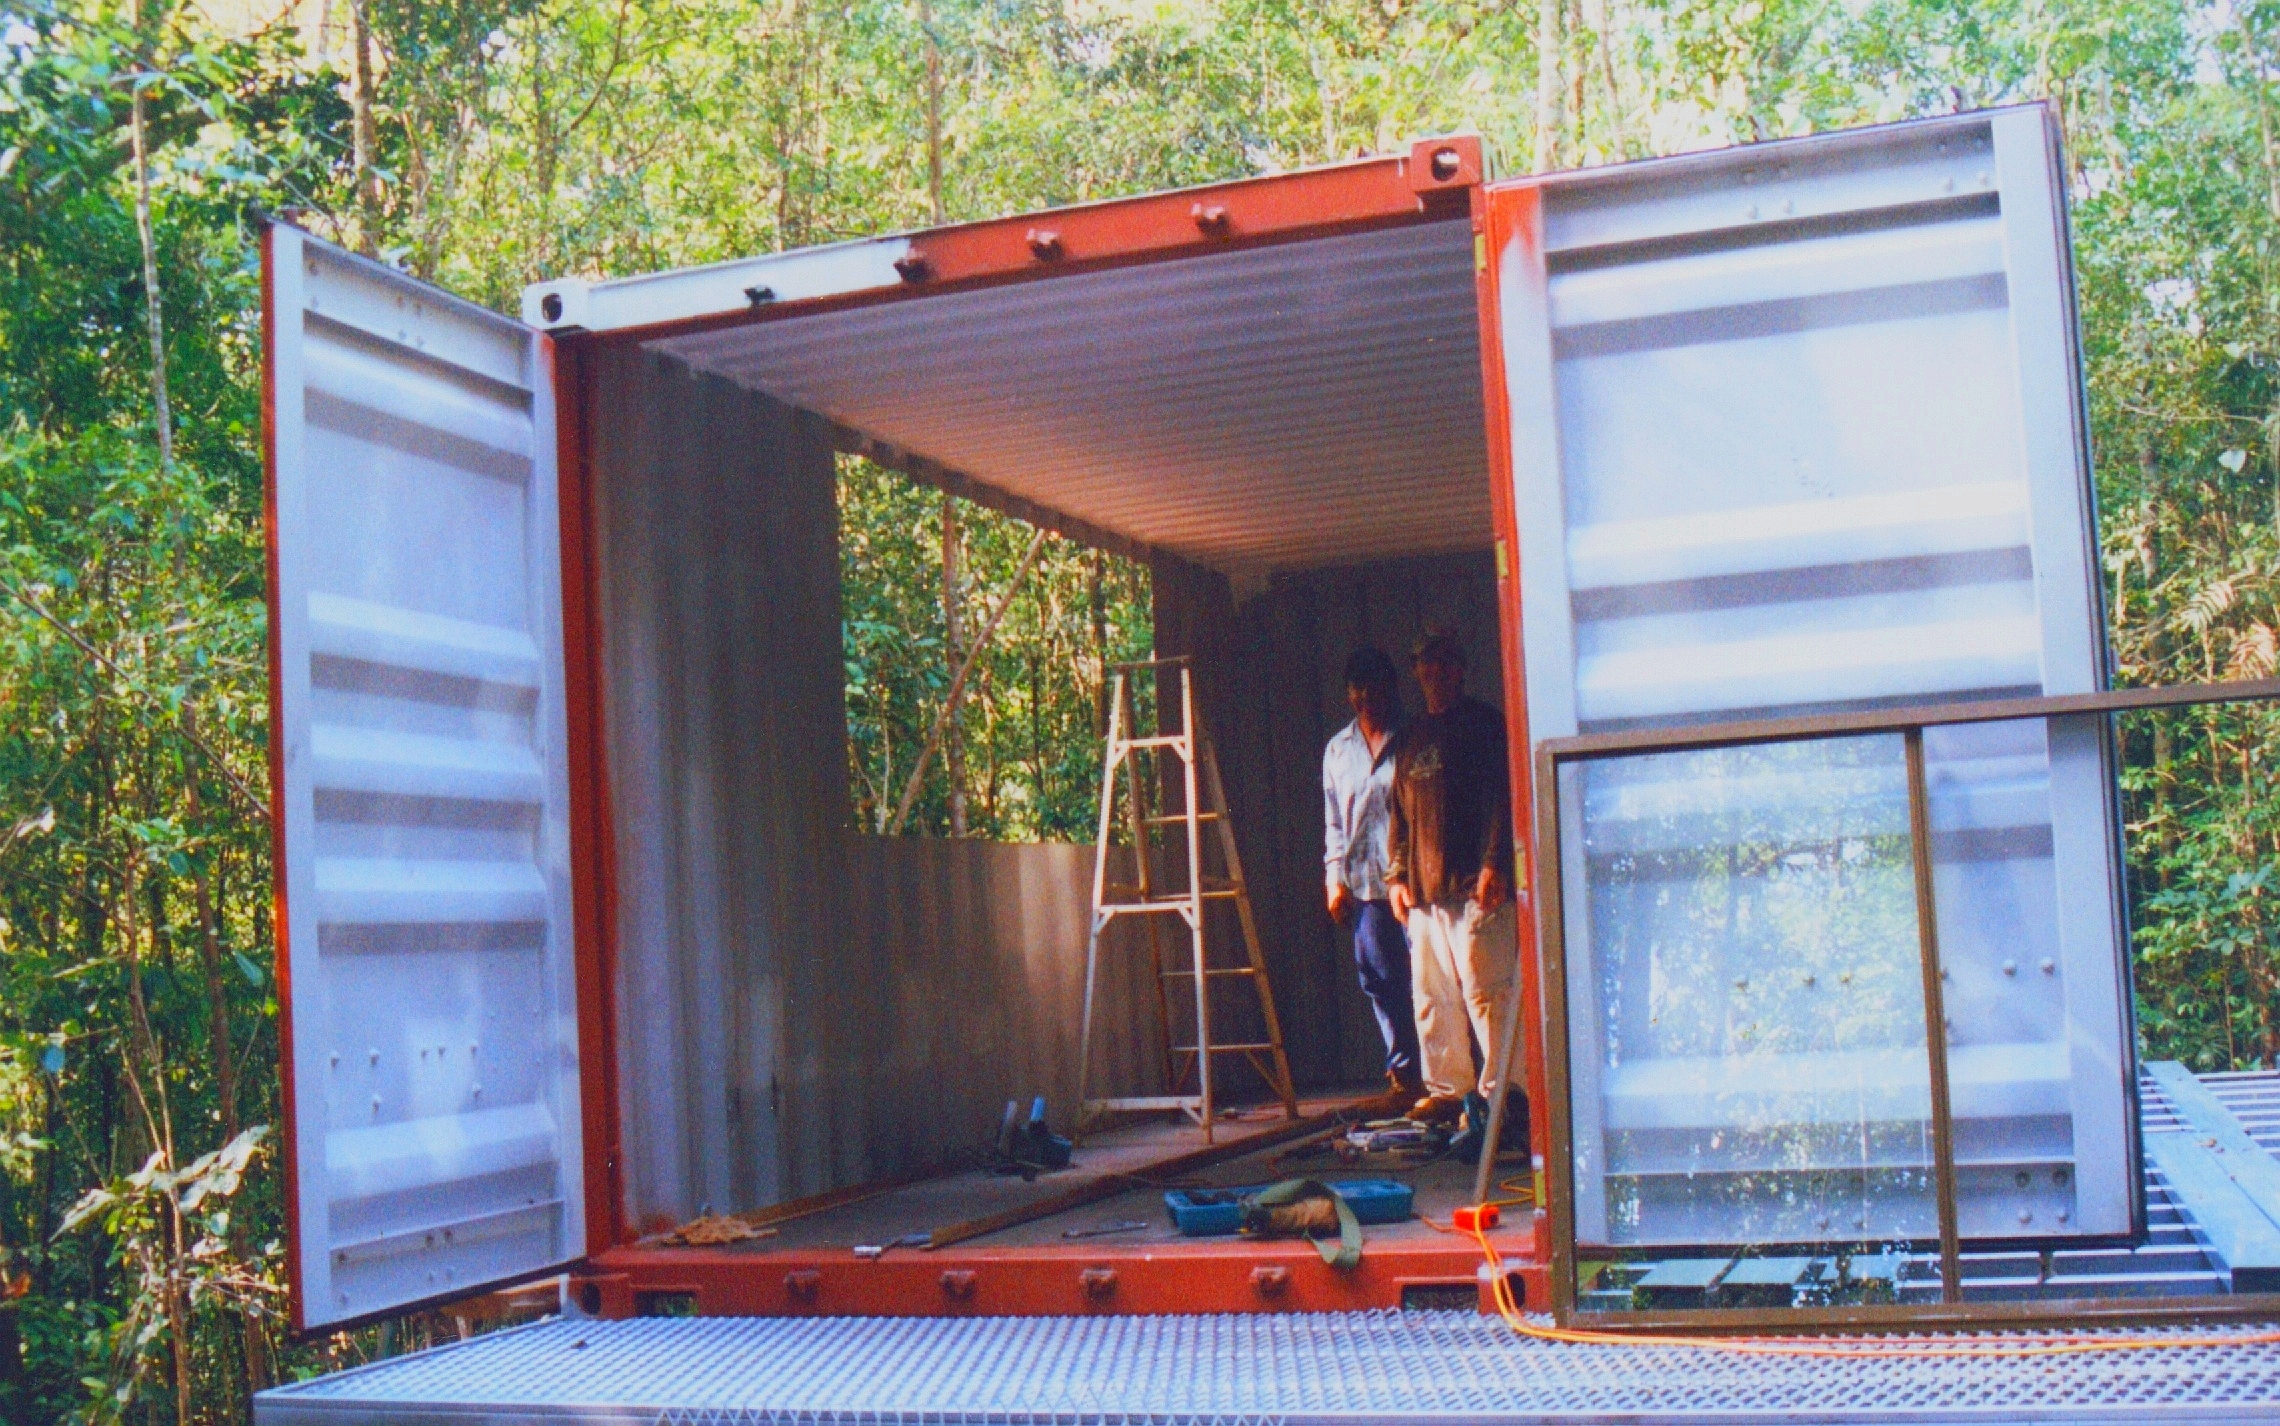 SHIPPING CONTAINER HOMEACCOMMODATION